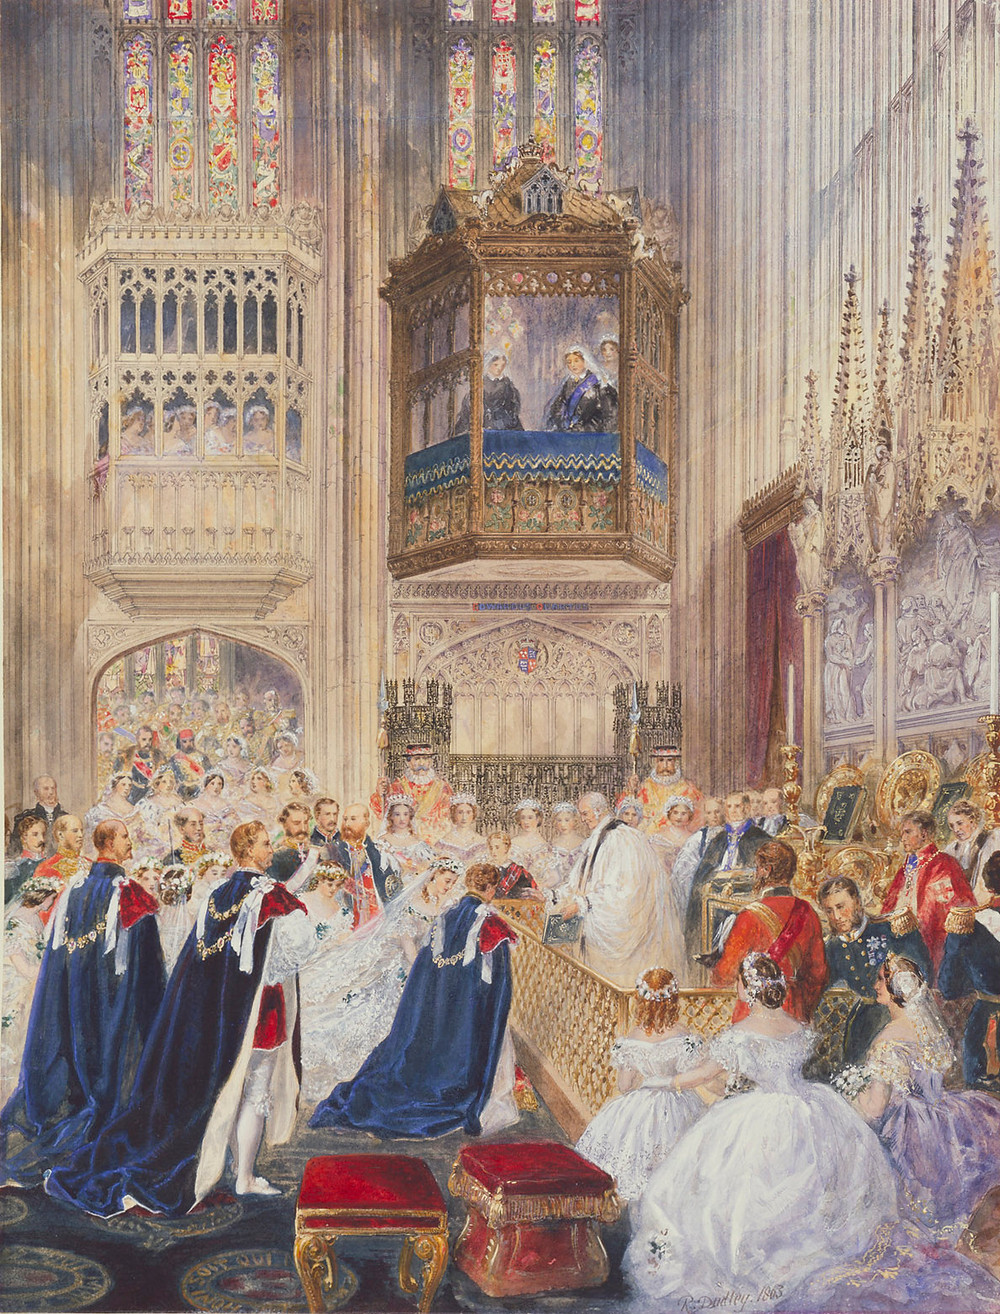 RCIN 921008; The marriage of the Prince of Wales to Alexandra of Denmark, 10 March 1863; Royal Collection Trust/© Her Majesty Queen Elizabeth II 2018